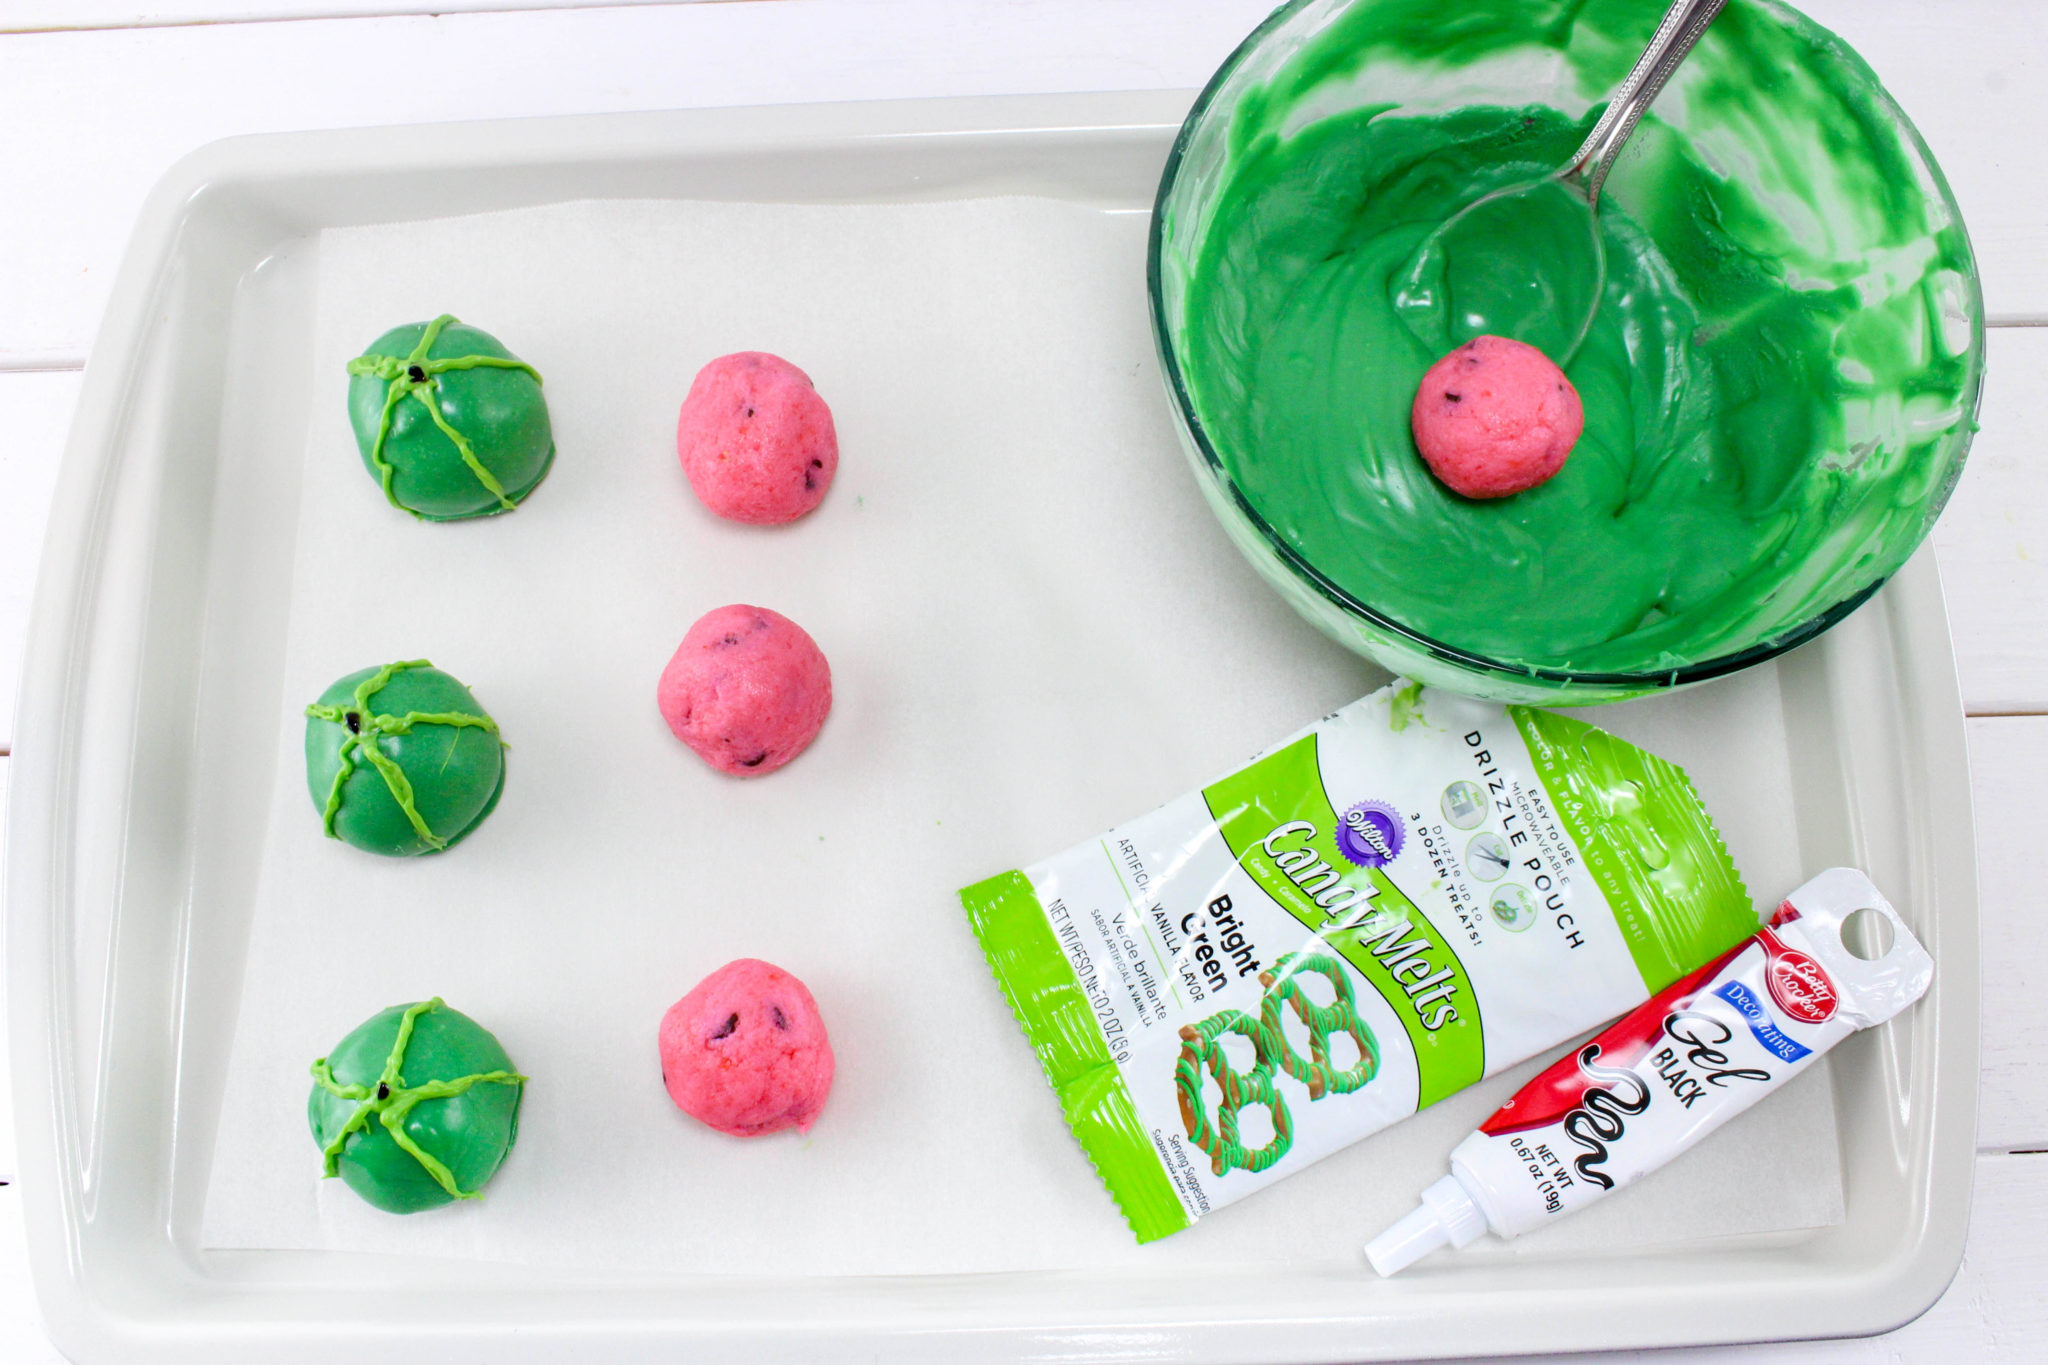 These Watermelon Cake Balls will be the hit of your summertime cookout! They don't taste like watermelon, but look the part and are super easy to make